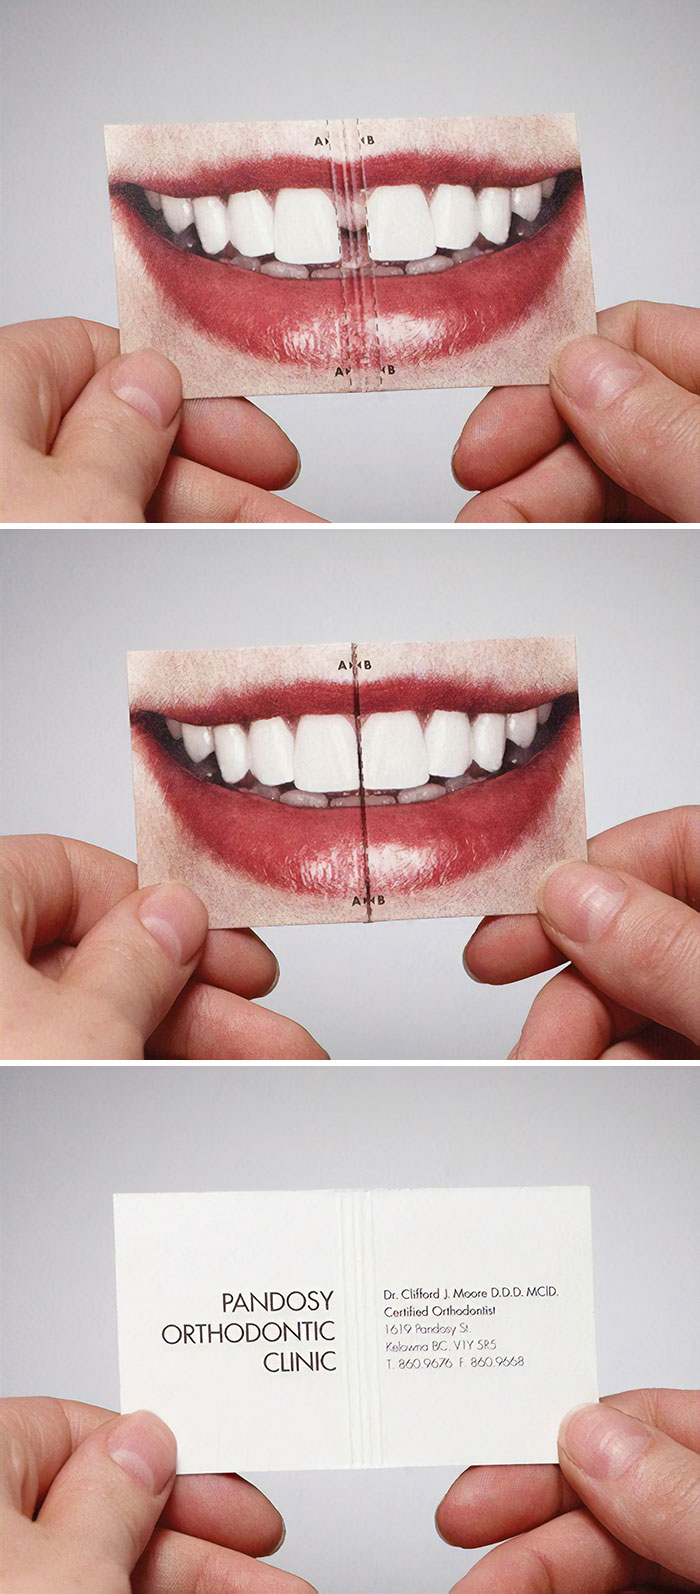 This Creative Business Card Was Done For An Orthodontist. When The Card Is Folded Together, The Gap In The Teeth Disappears